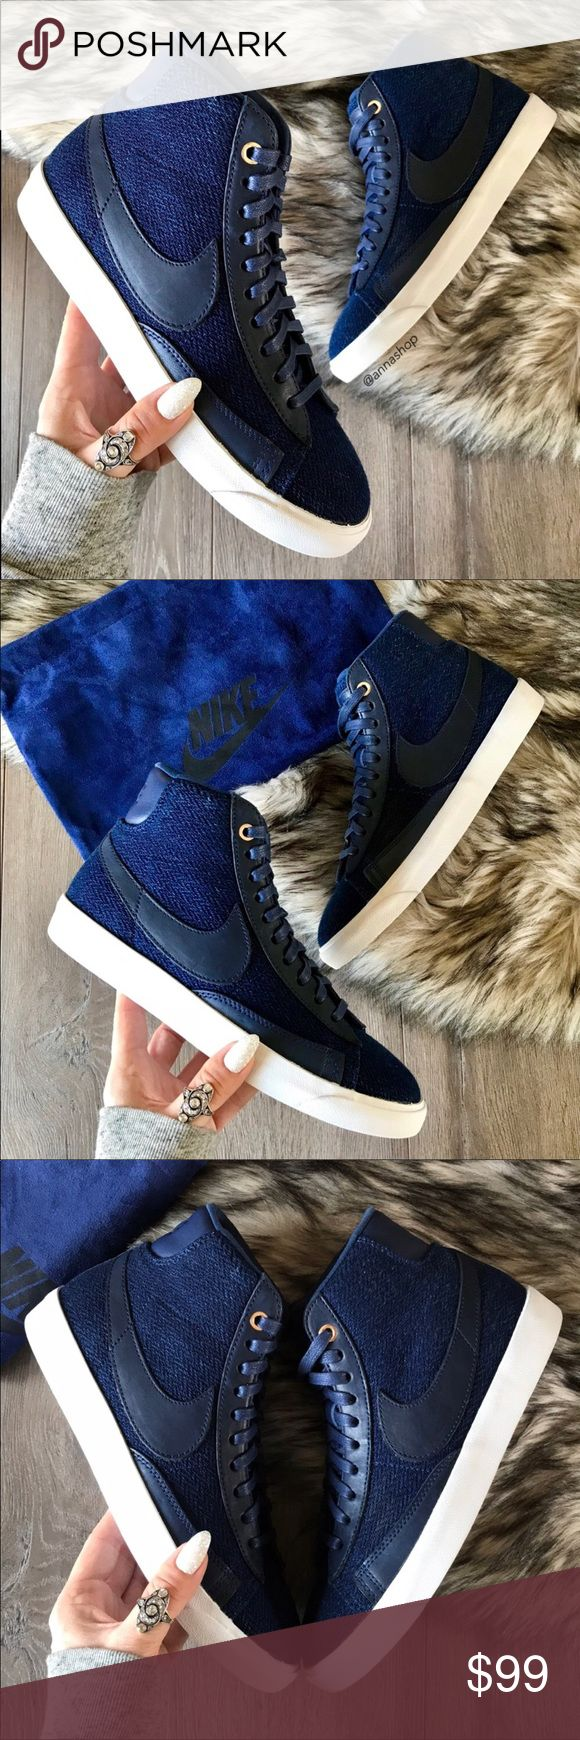 NWT Nike blazer mid Premium Denim Brand new with box no lid, price is firm. From its birth as a basketball sneaker in 1972, this suave mid-top has matured into a street-style essential. Lace-up style Leather and textile upper/synthetic lining and sole Imported Nike Shoes Sneakers